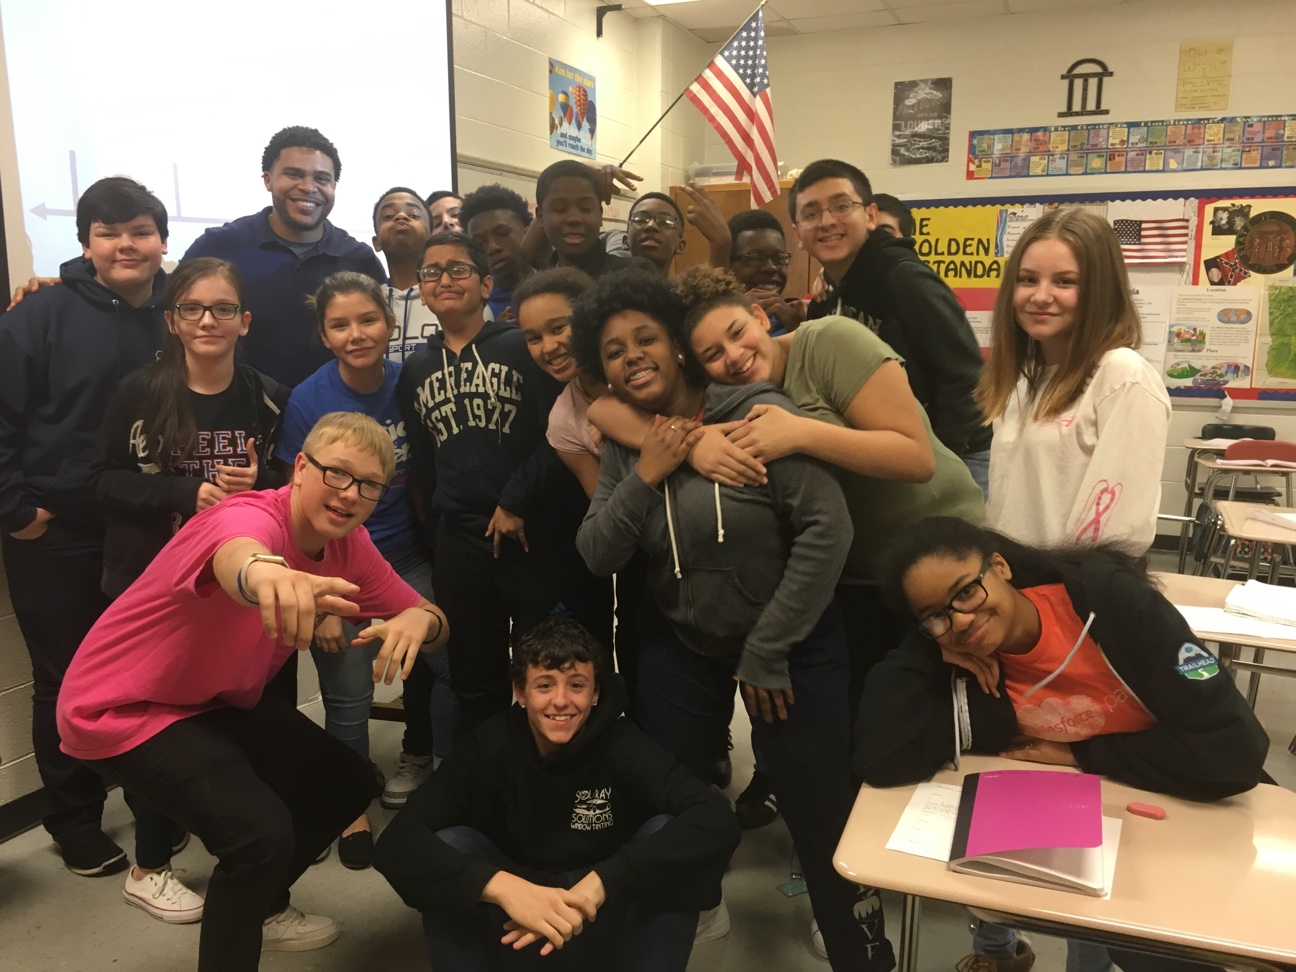 Image: David Yancey with his 8th grade students at Edwards Middle School